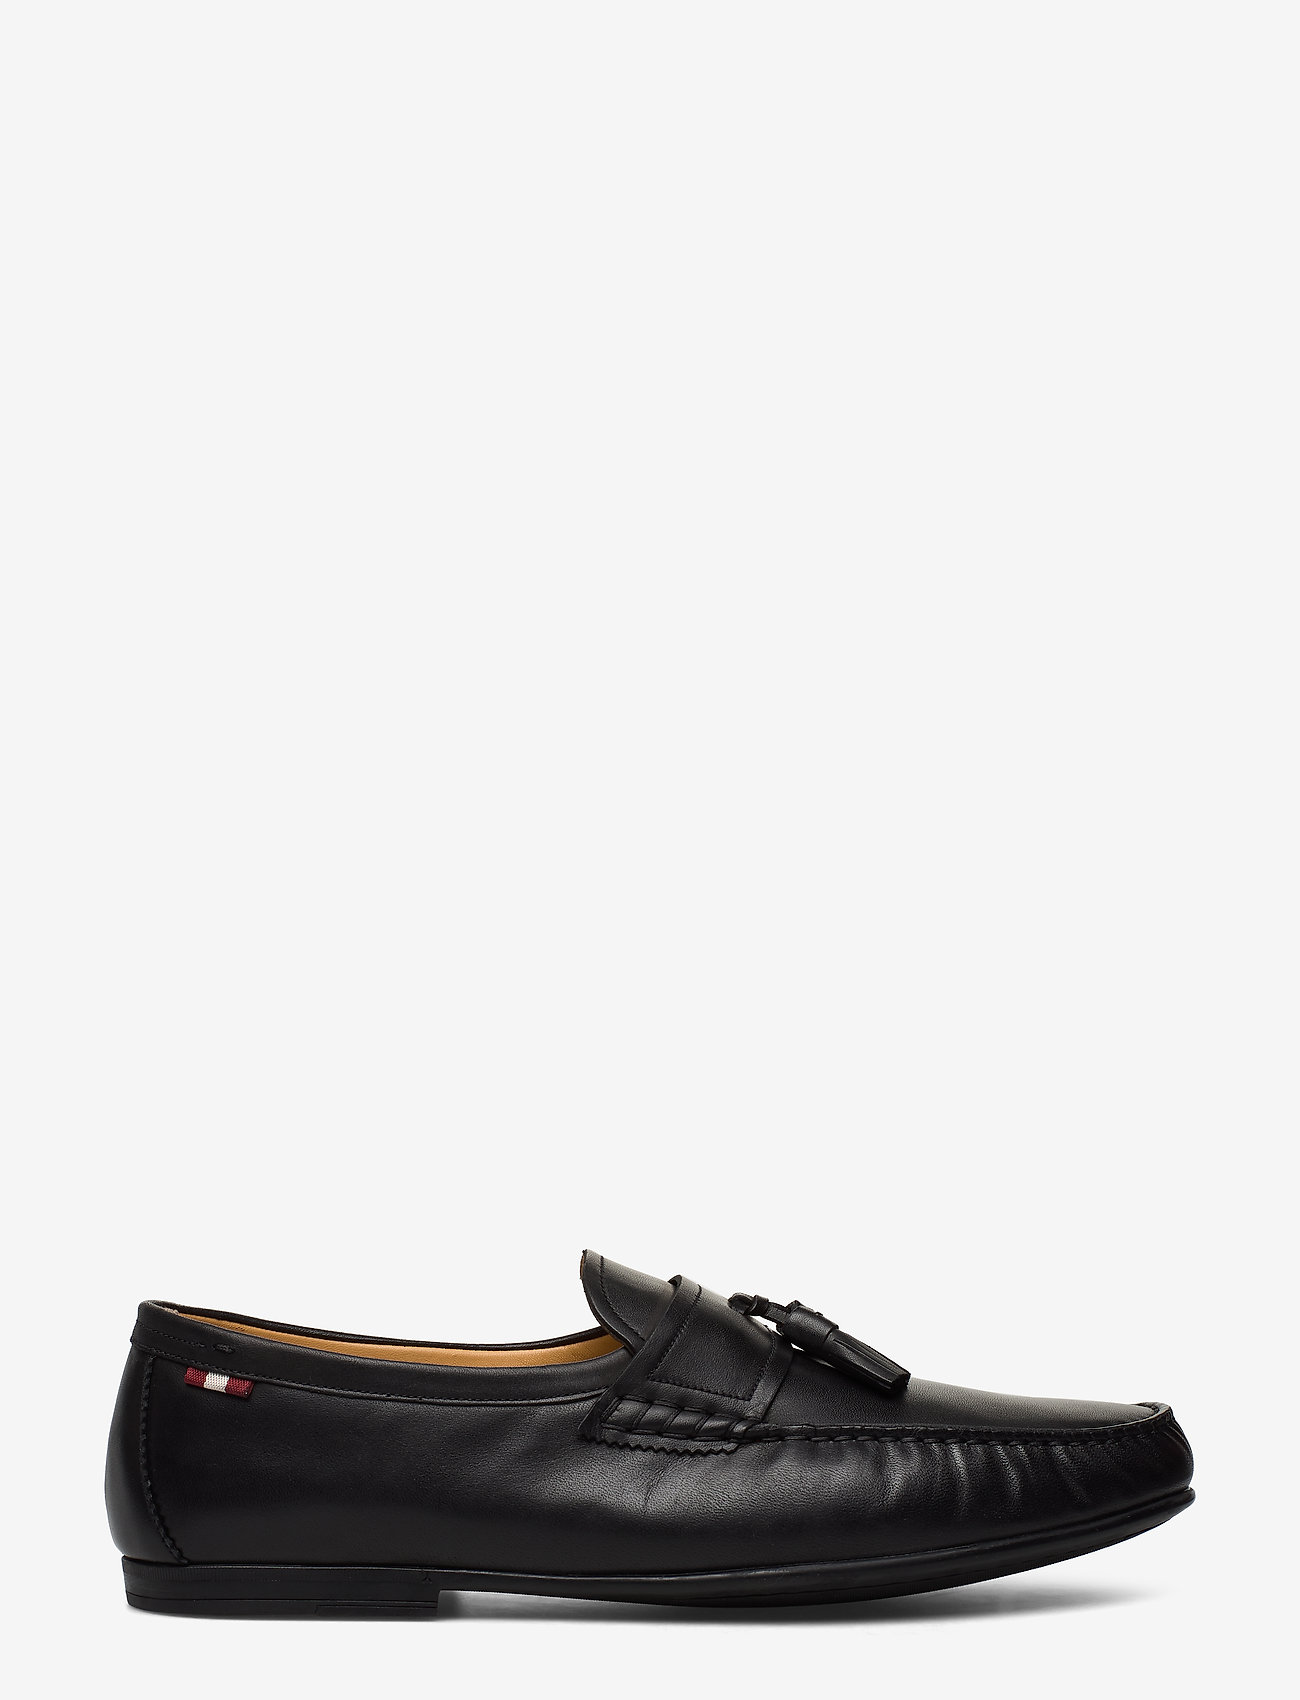 Bally - CREIGHTON/540 - loafers - black - 1